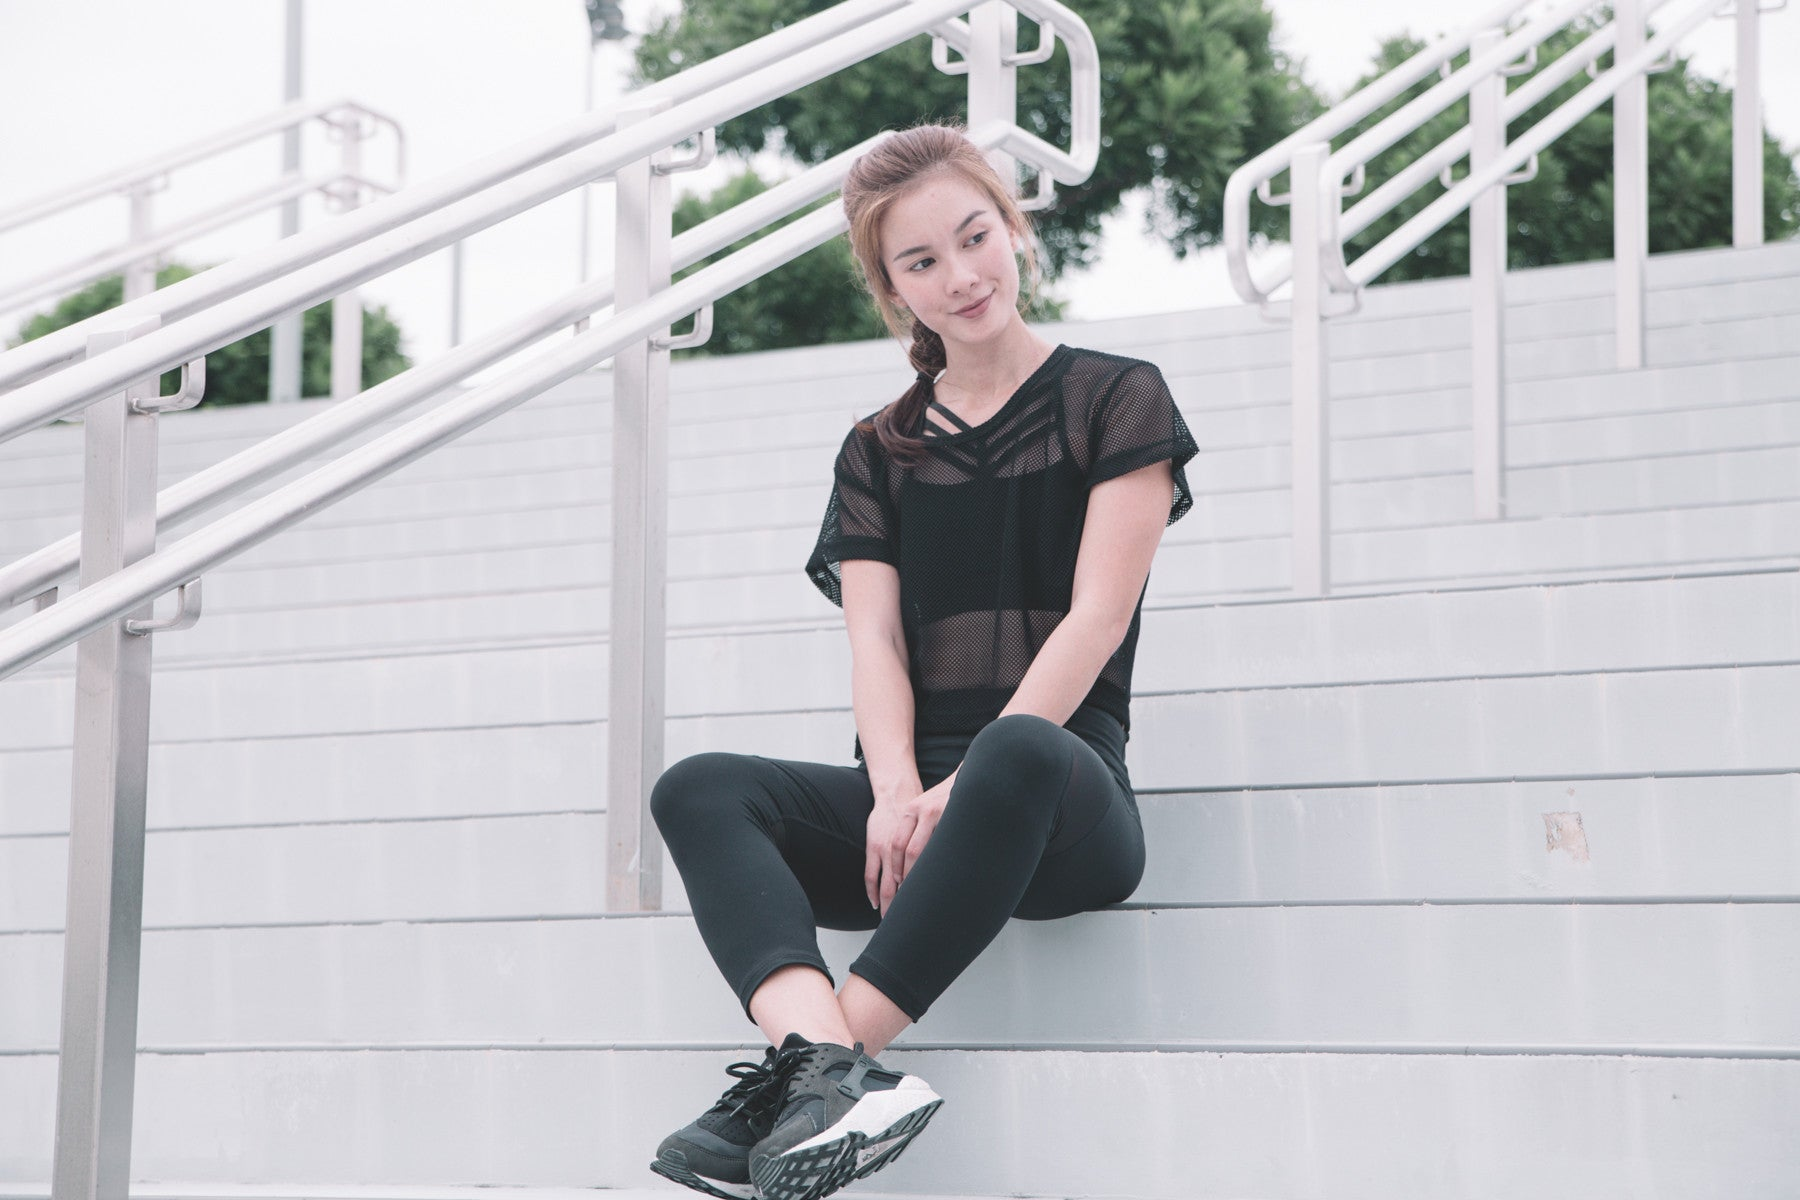 [Restocked] Mesh Sports Top in Black